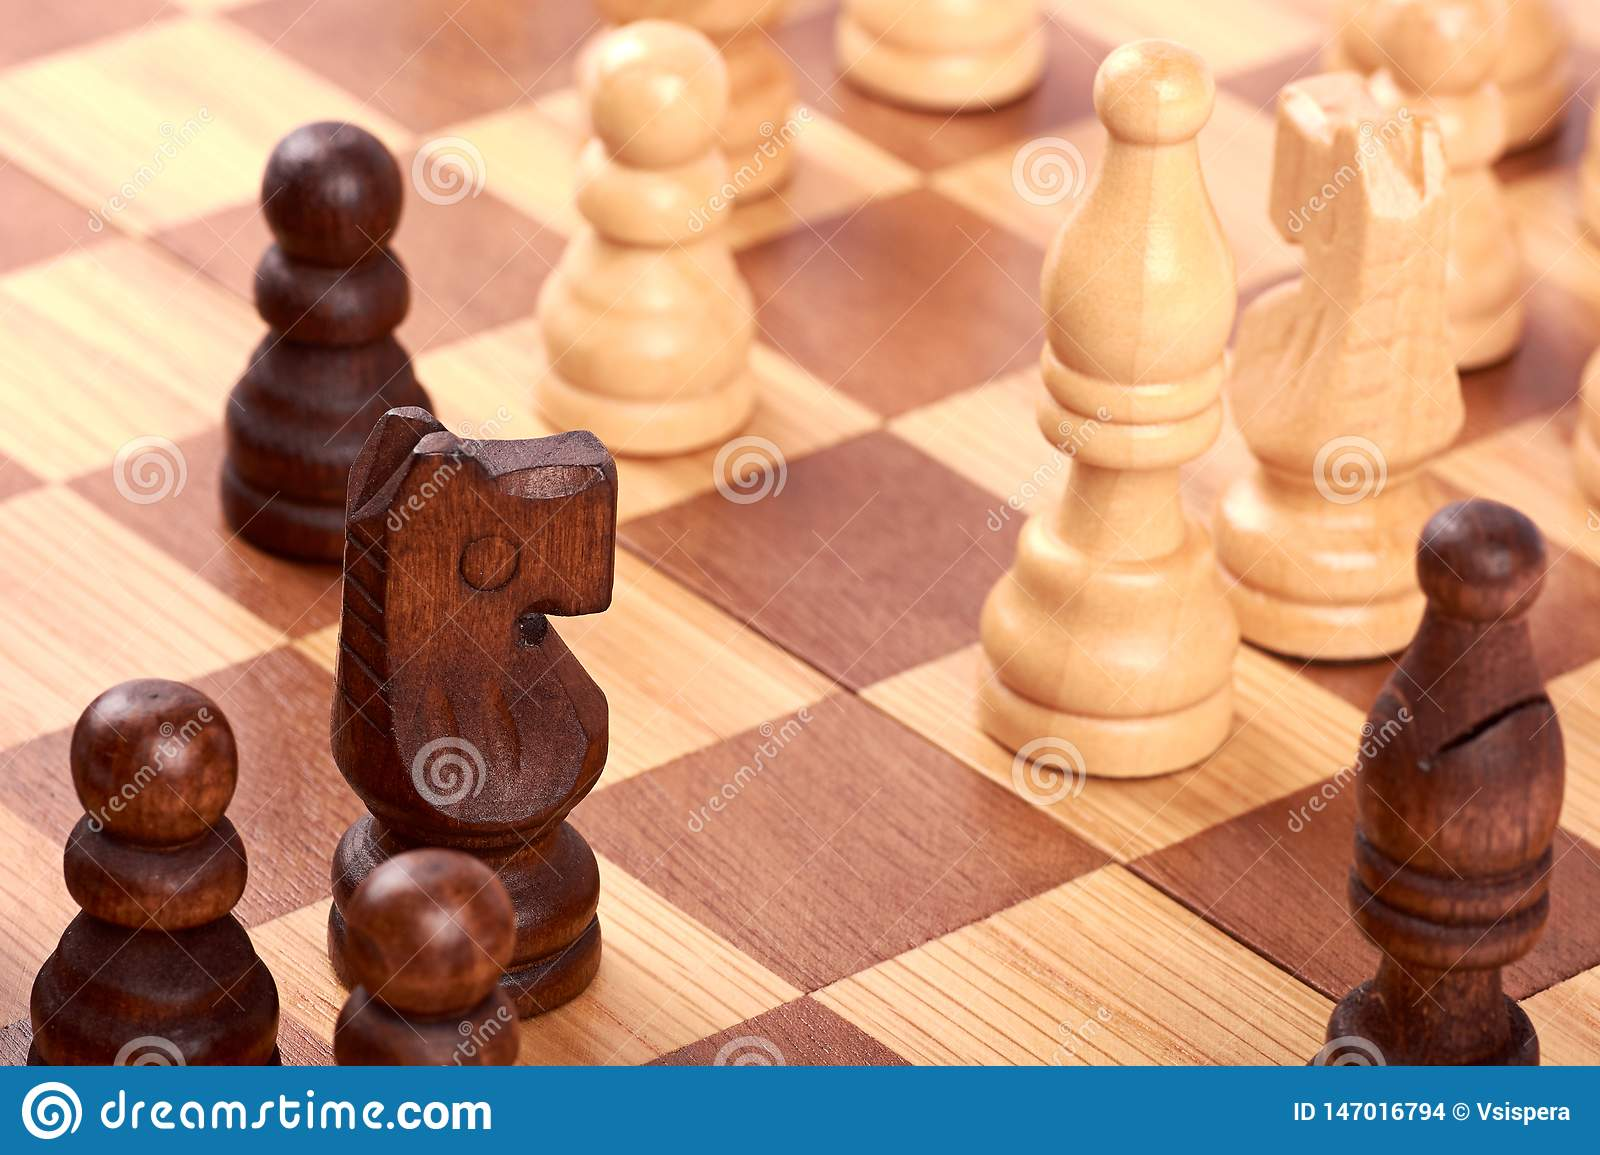 Close-up view of chess game with white and black log pieces on brown chessboard. Fight with horse and pawns